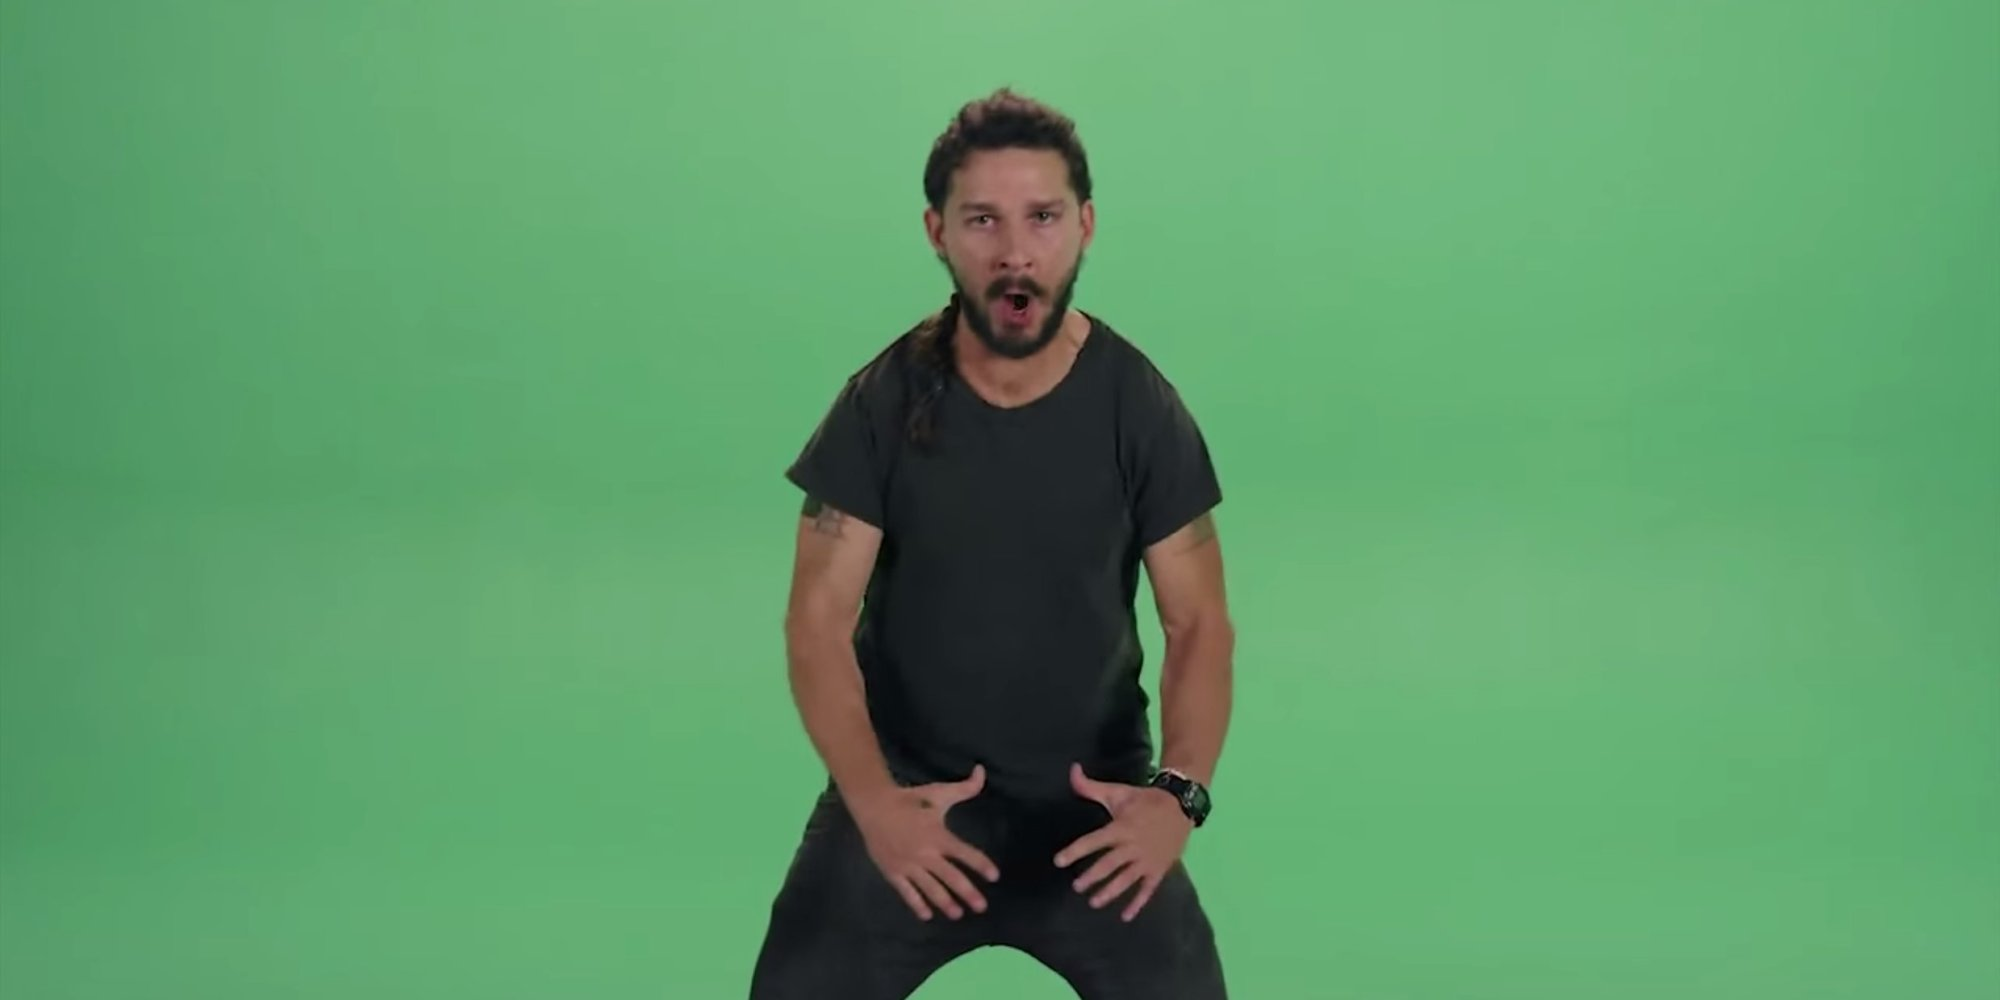 Shia Labeoufs Just Do It Motivational Video Is Good But These Parodies Are Huffington Post Canada on dpo